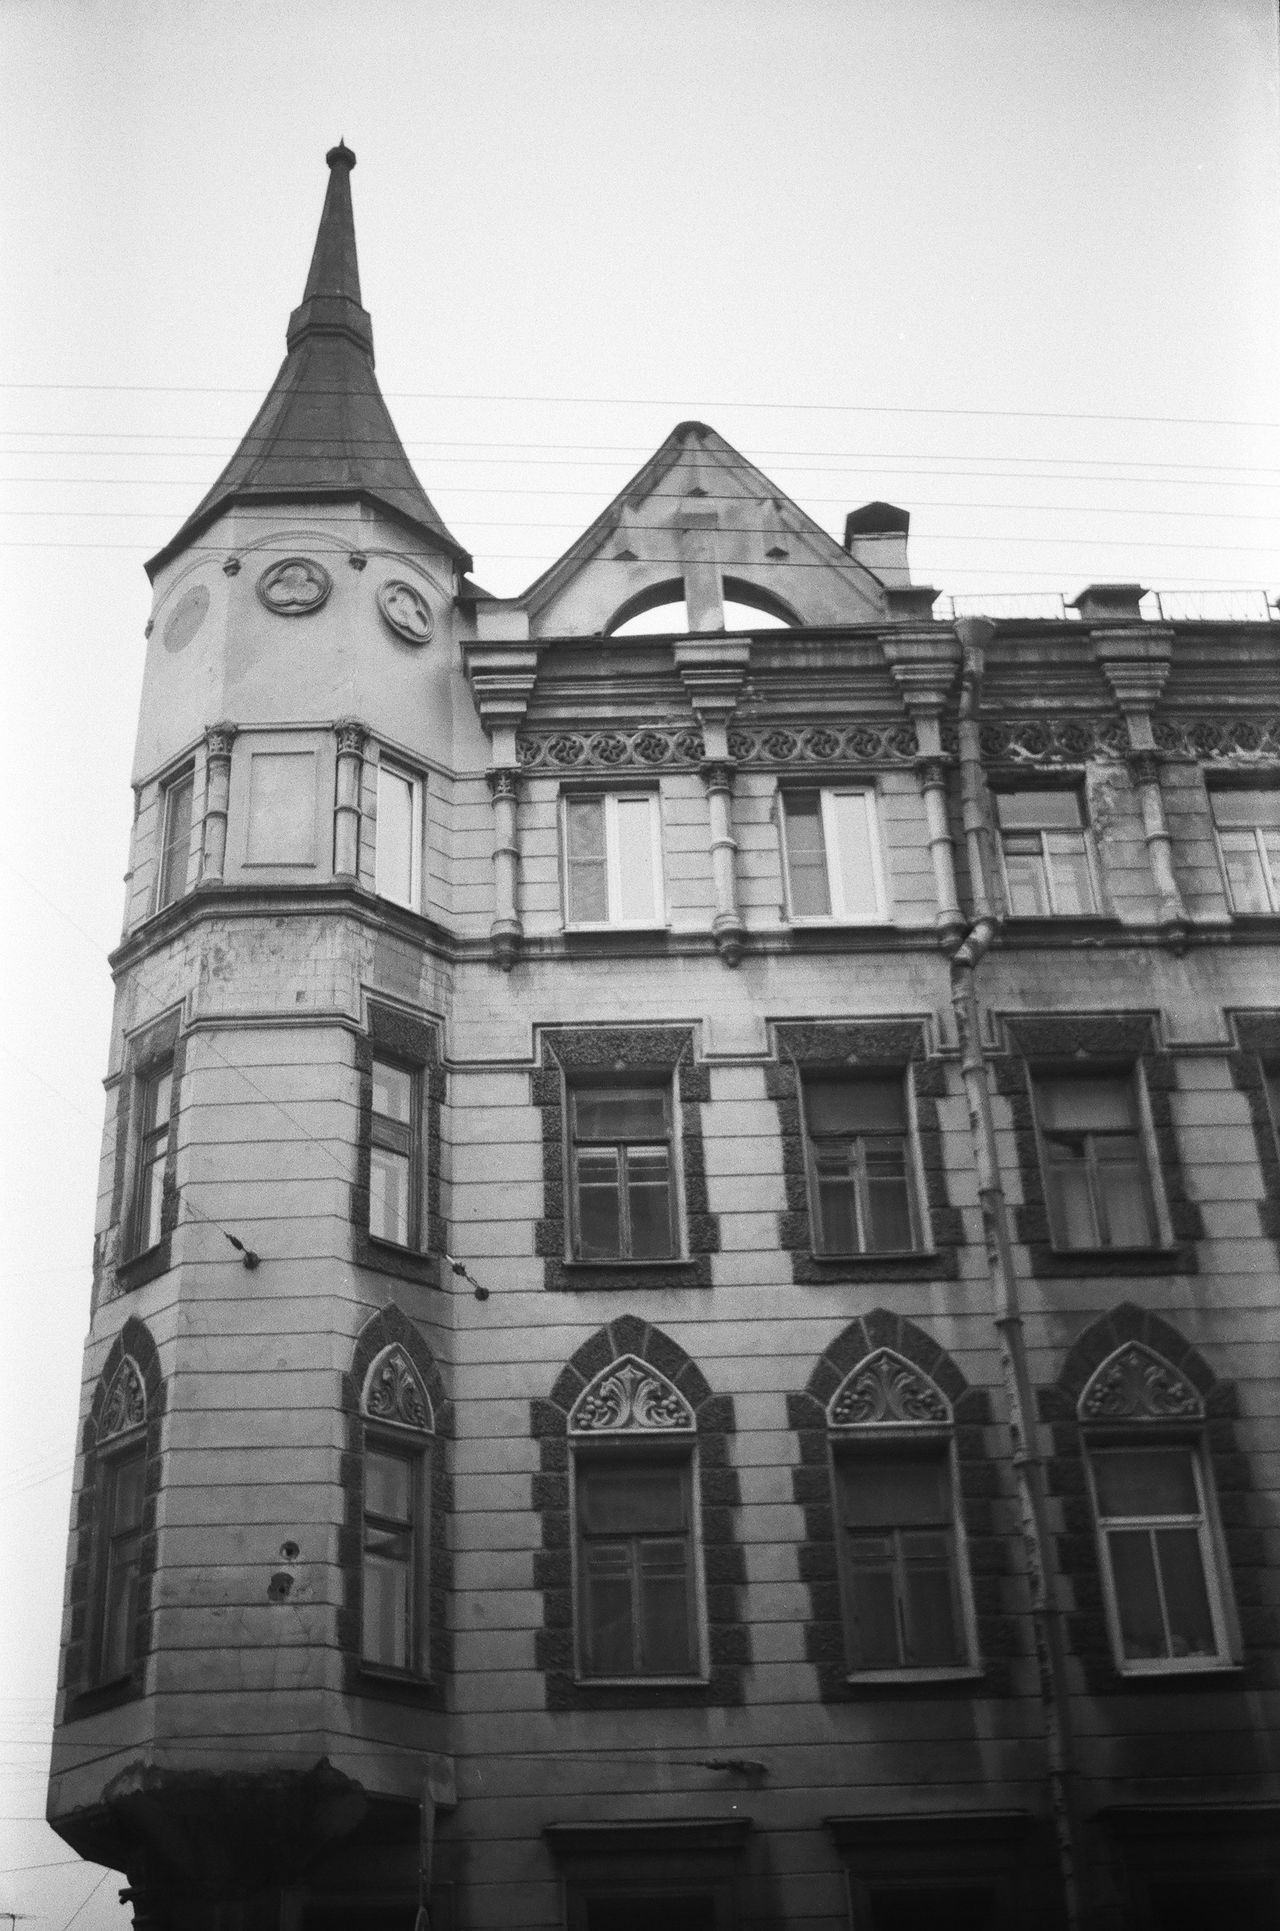 Architecture Built Structure Building Exterior Window Clear Sky Clear Sky Exterior Building City Monochrome Photgraphy Saintpetersburg FiftyShadesOfGrey Blackandwhite Monochrome Doublecolors 50shadesofgrey Facades Black And White Grayscale Bandw Anticolors Fiftyshades Shadow Slide Architecture